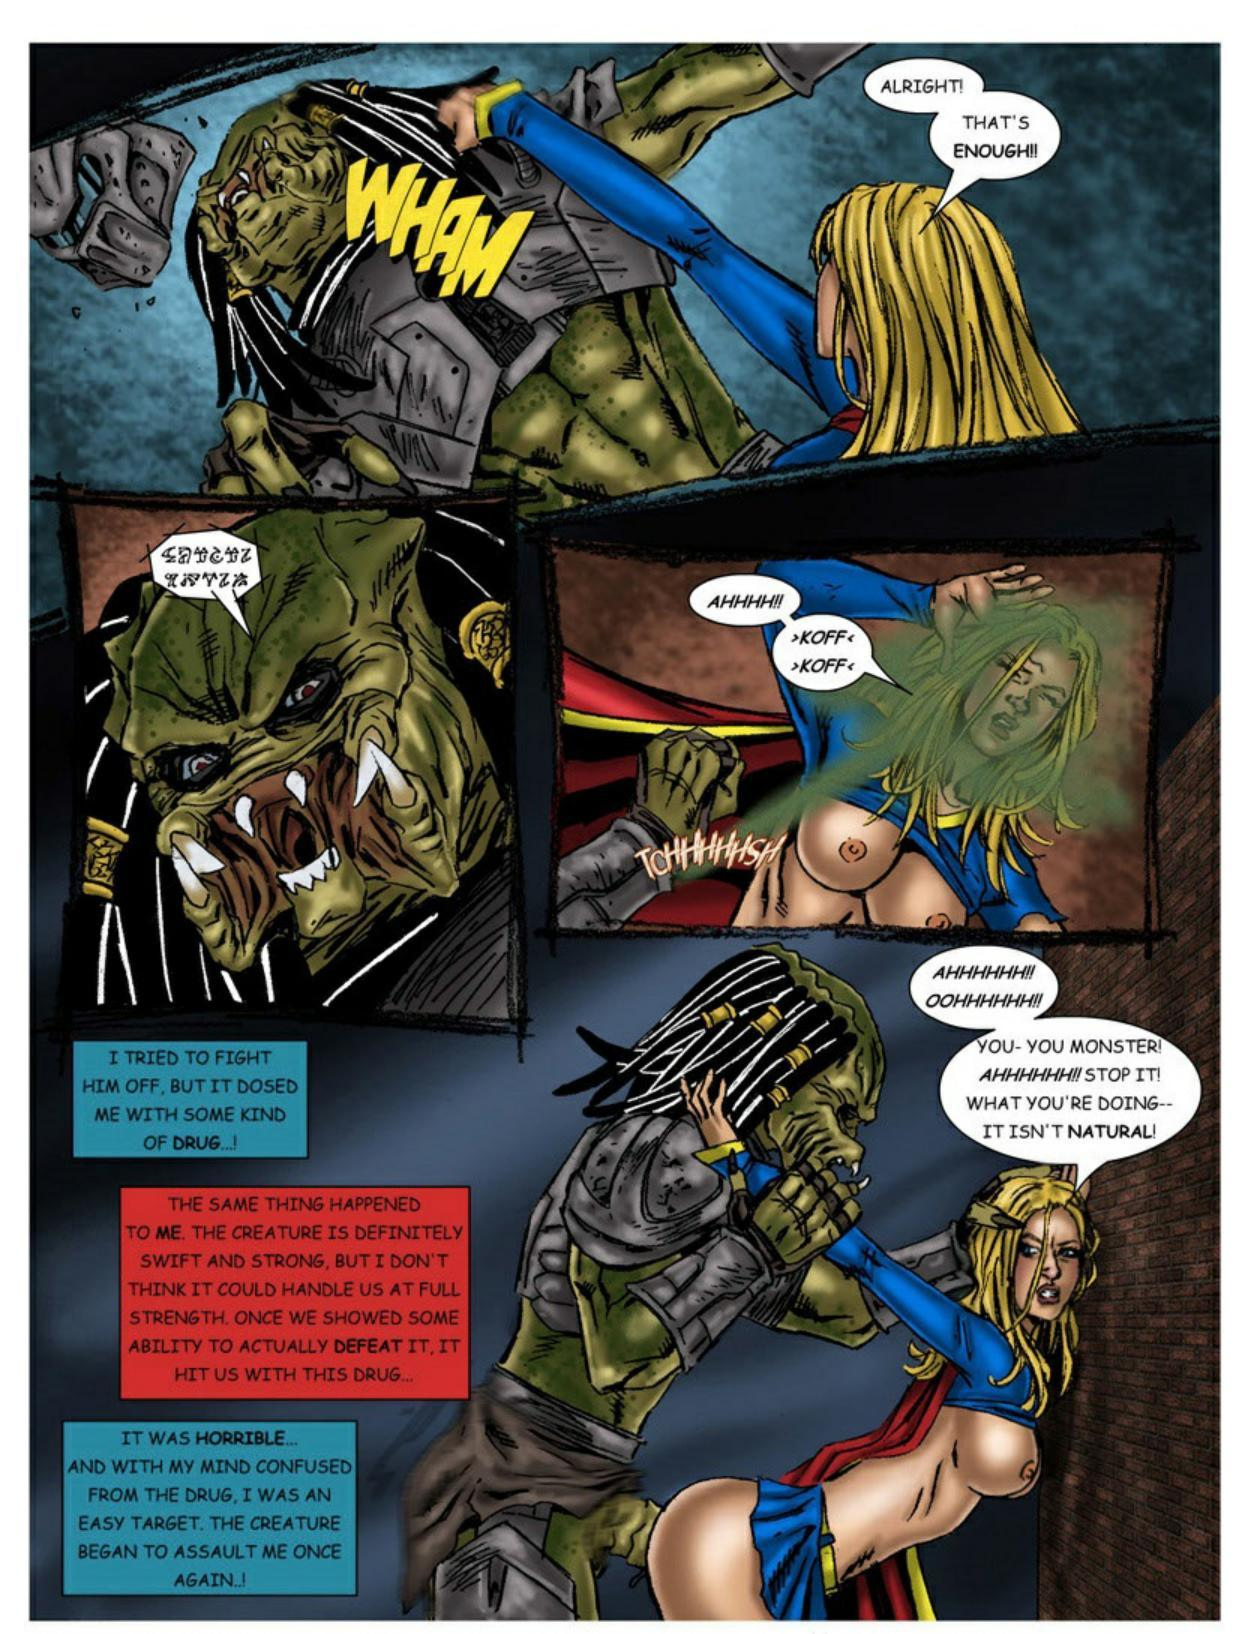 Wonder Woman vs Predator – Part 1-345 free sex comic